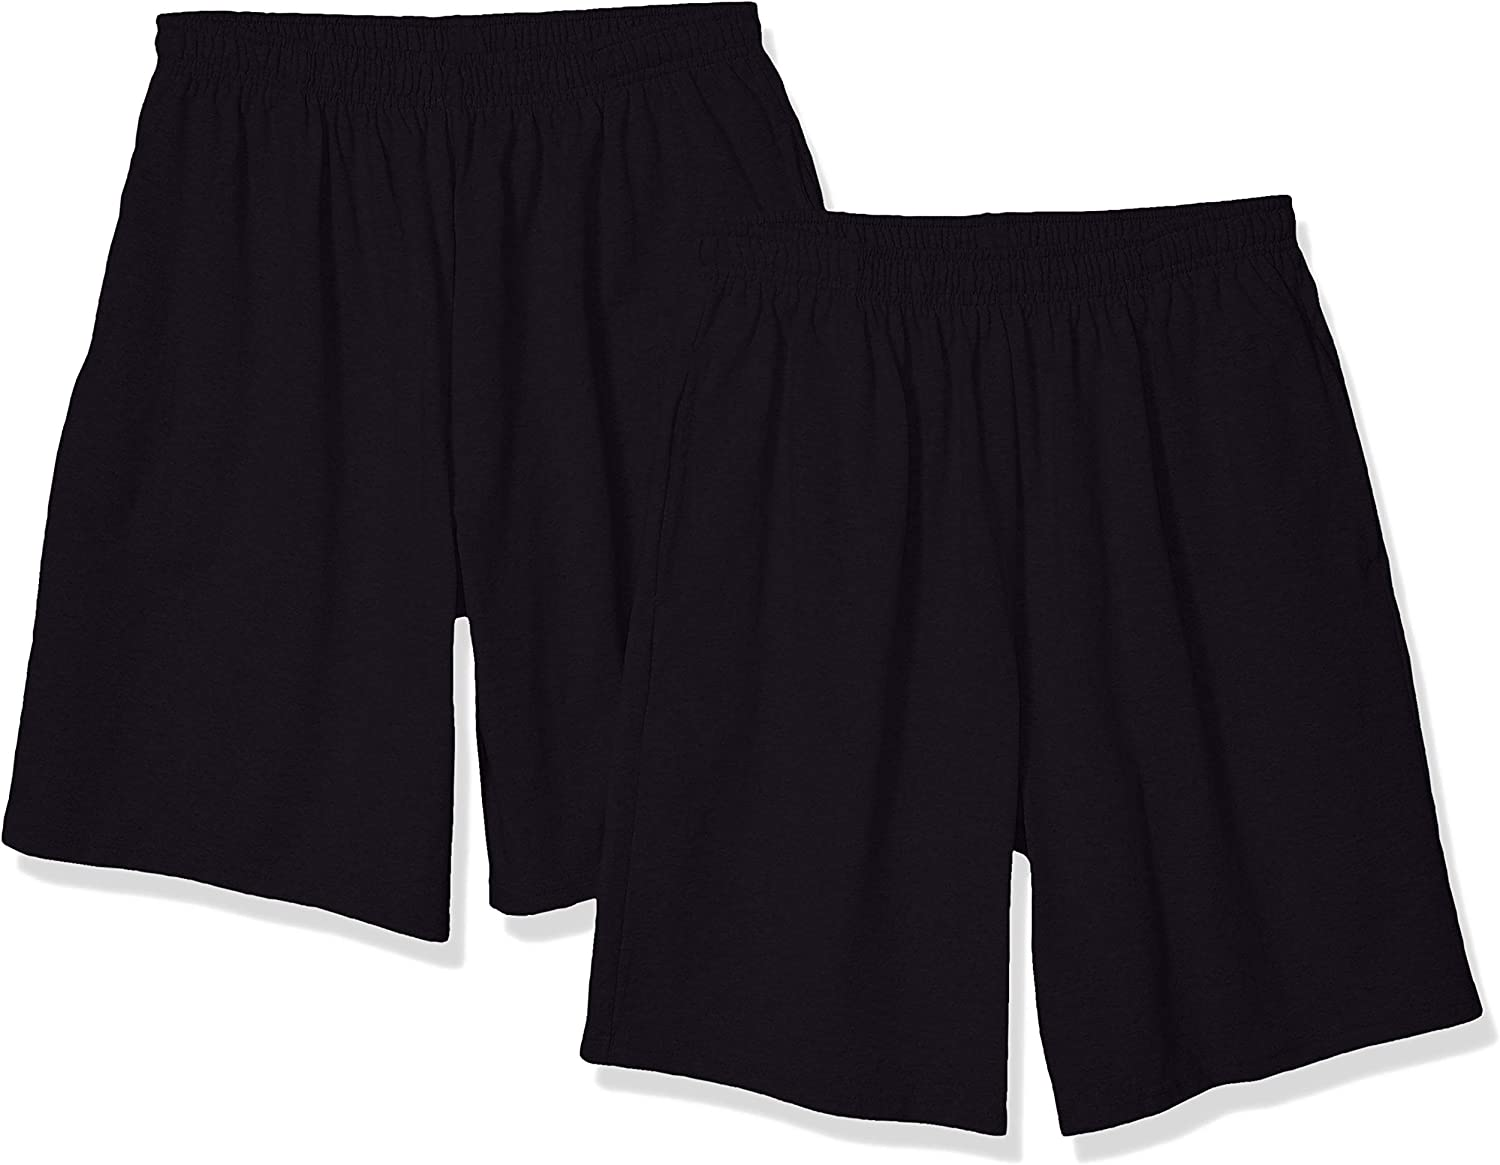 SOFFE Mens Classic Cotton Pocket Short Shorts